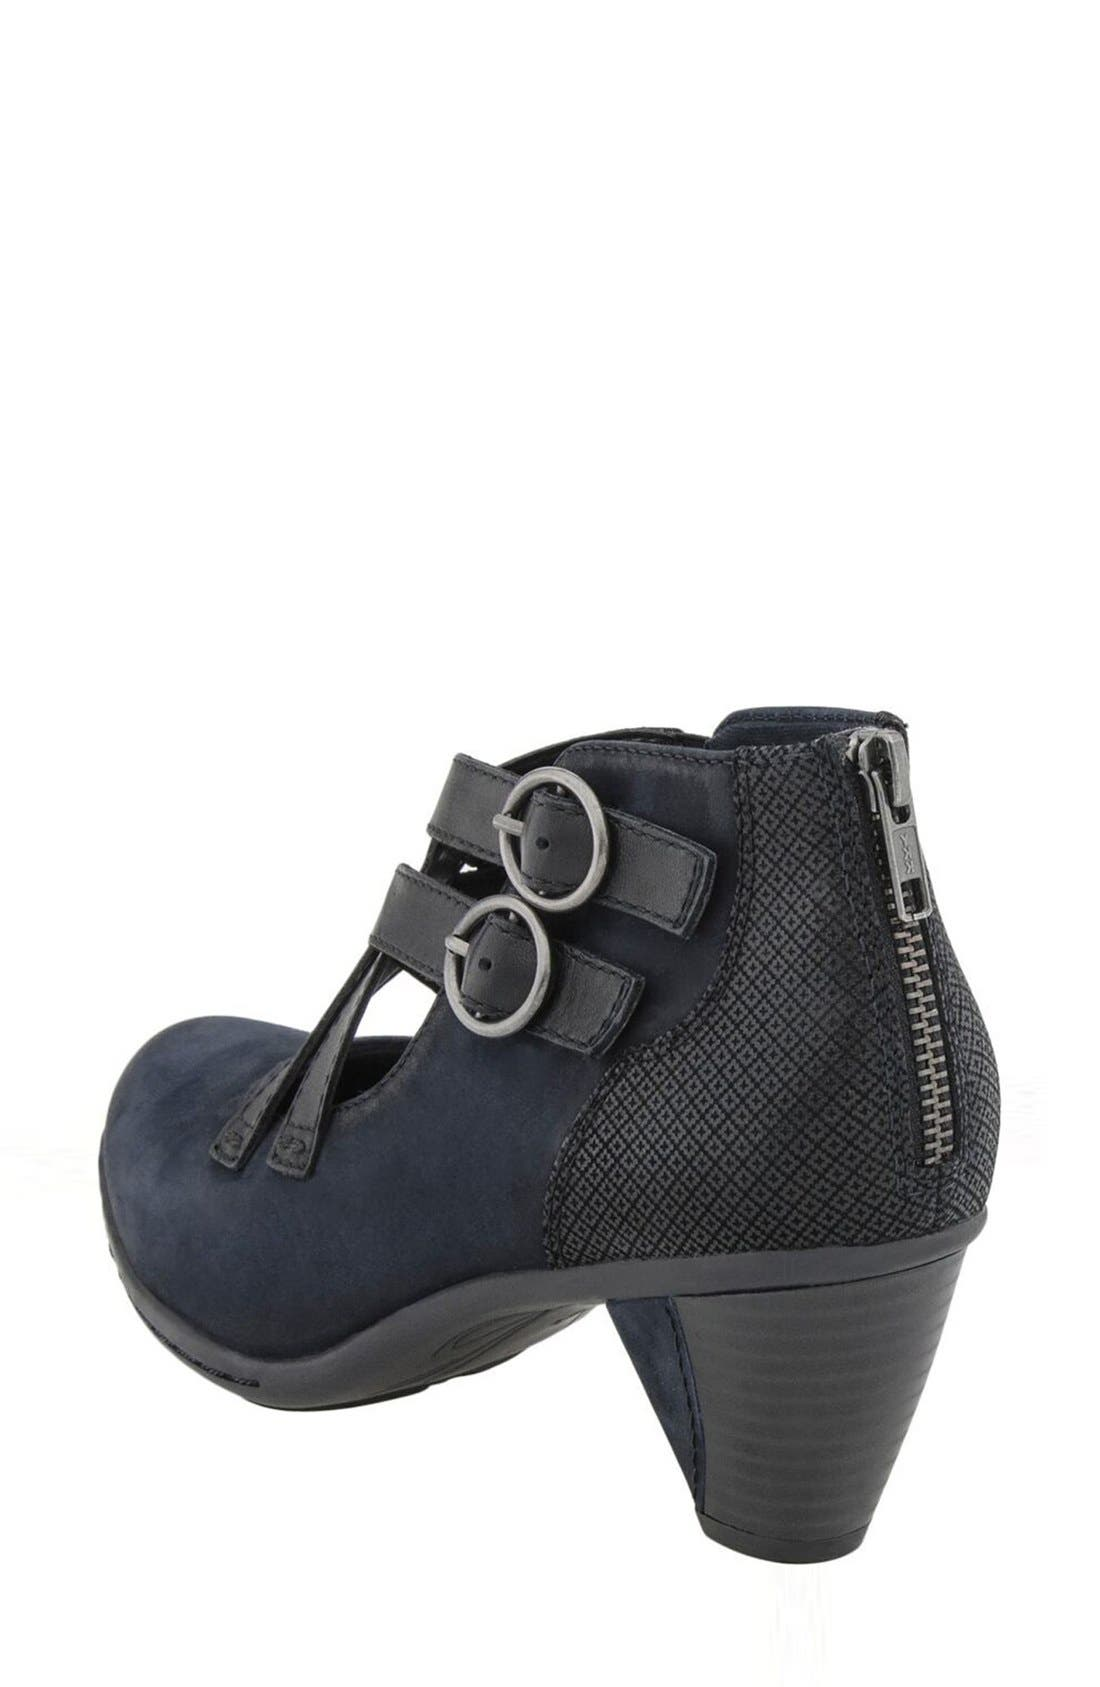 'Amber' Buckle Bootie,                             Alternate thumbnail 2, color,                             Navy Nubuck Leather